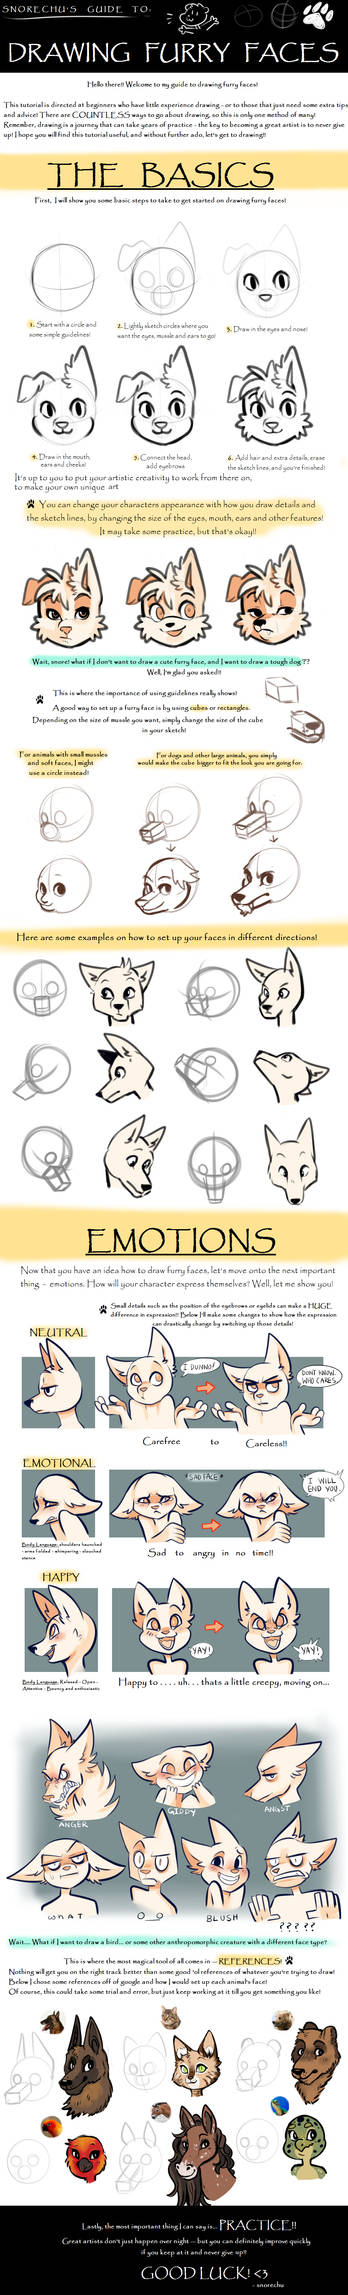 Guide to Drawing Furry Faces 2.0